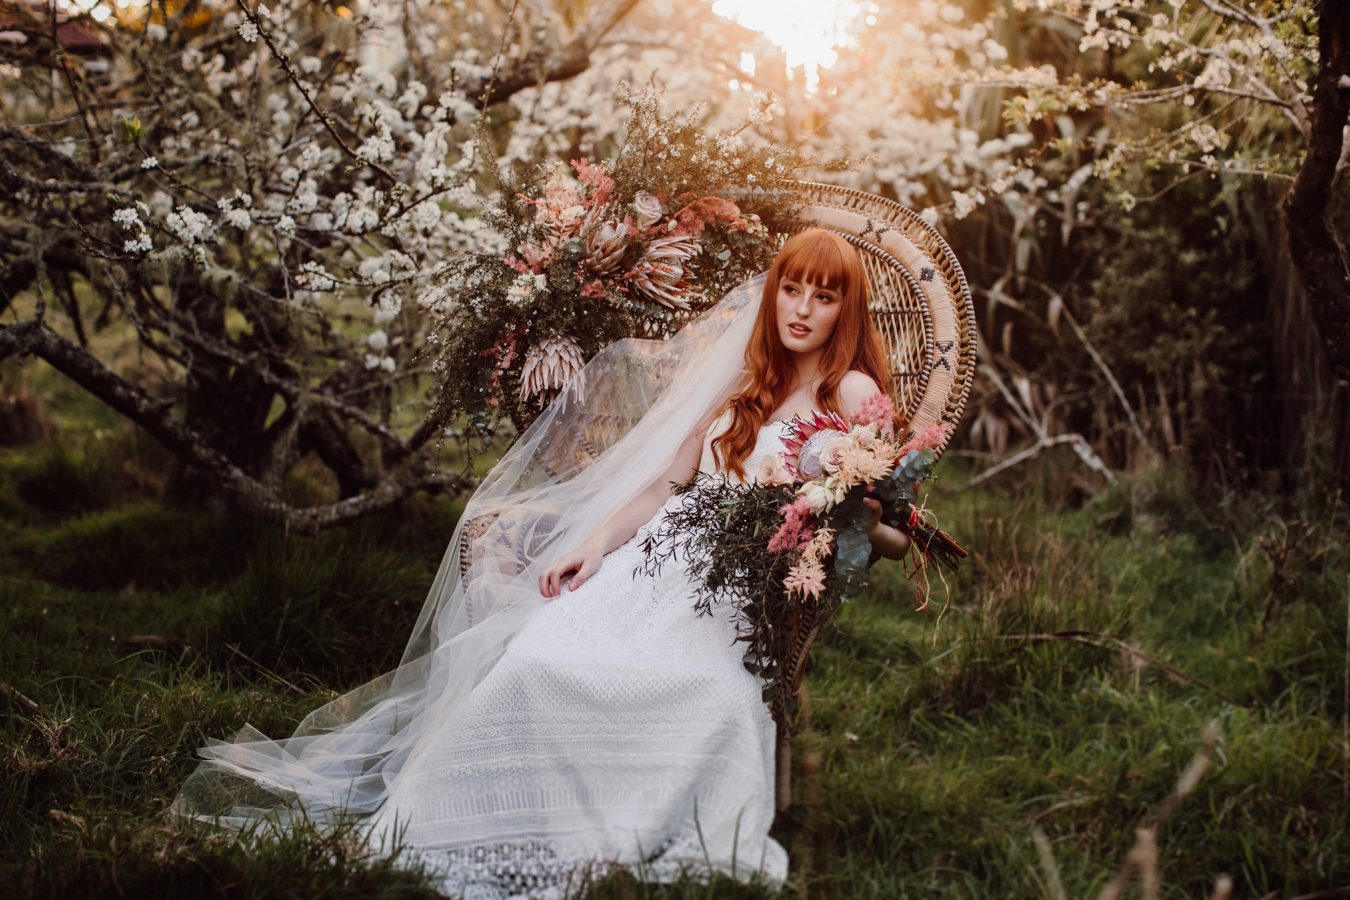 Bride sitting in cane chair in orchard, leaning to her left and holding bouquet of flowers on arm of chair